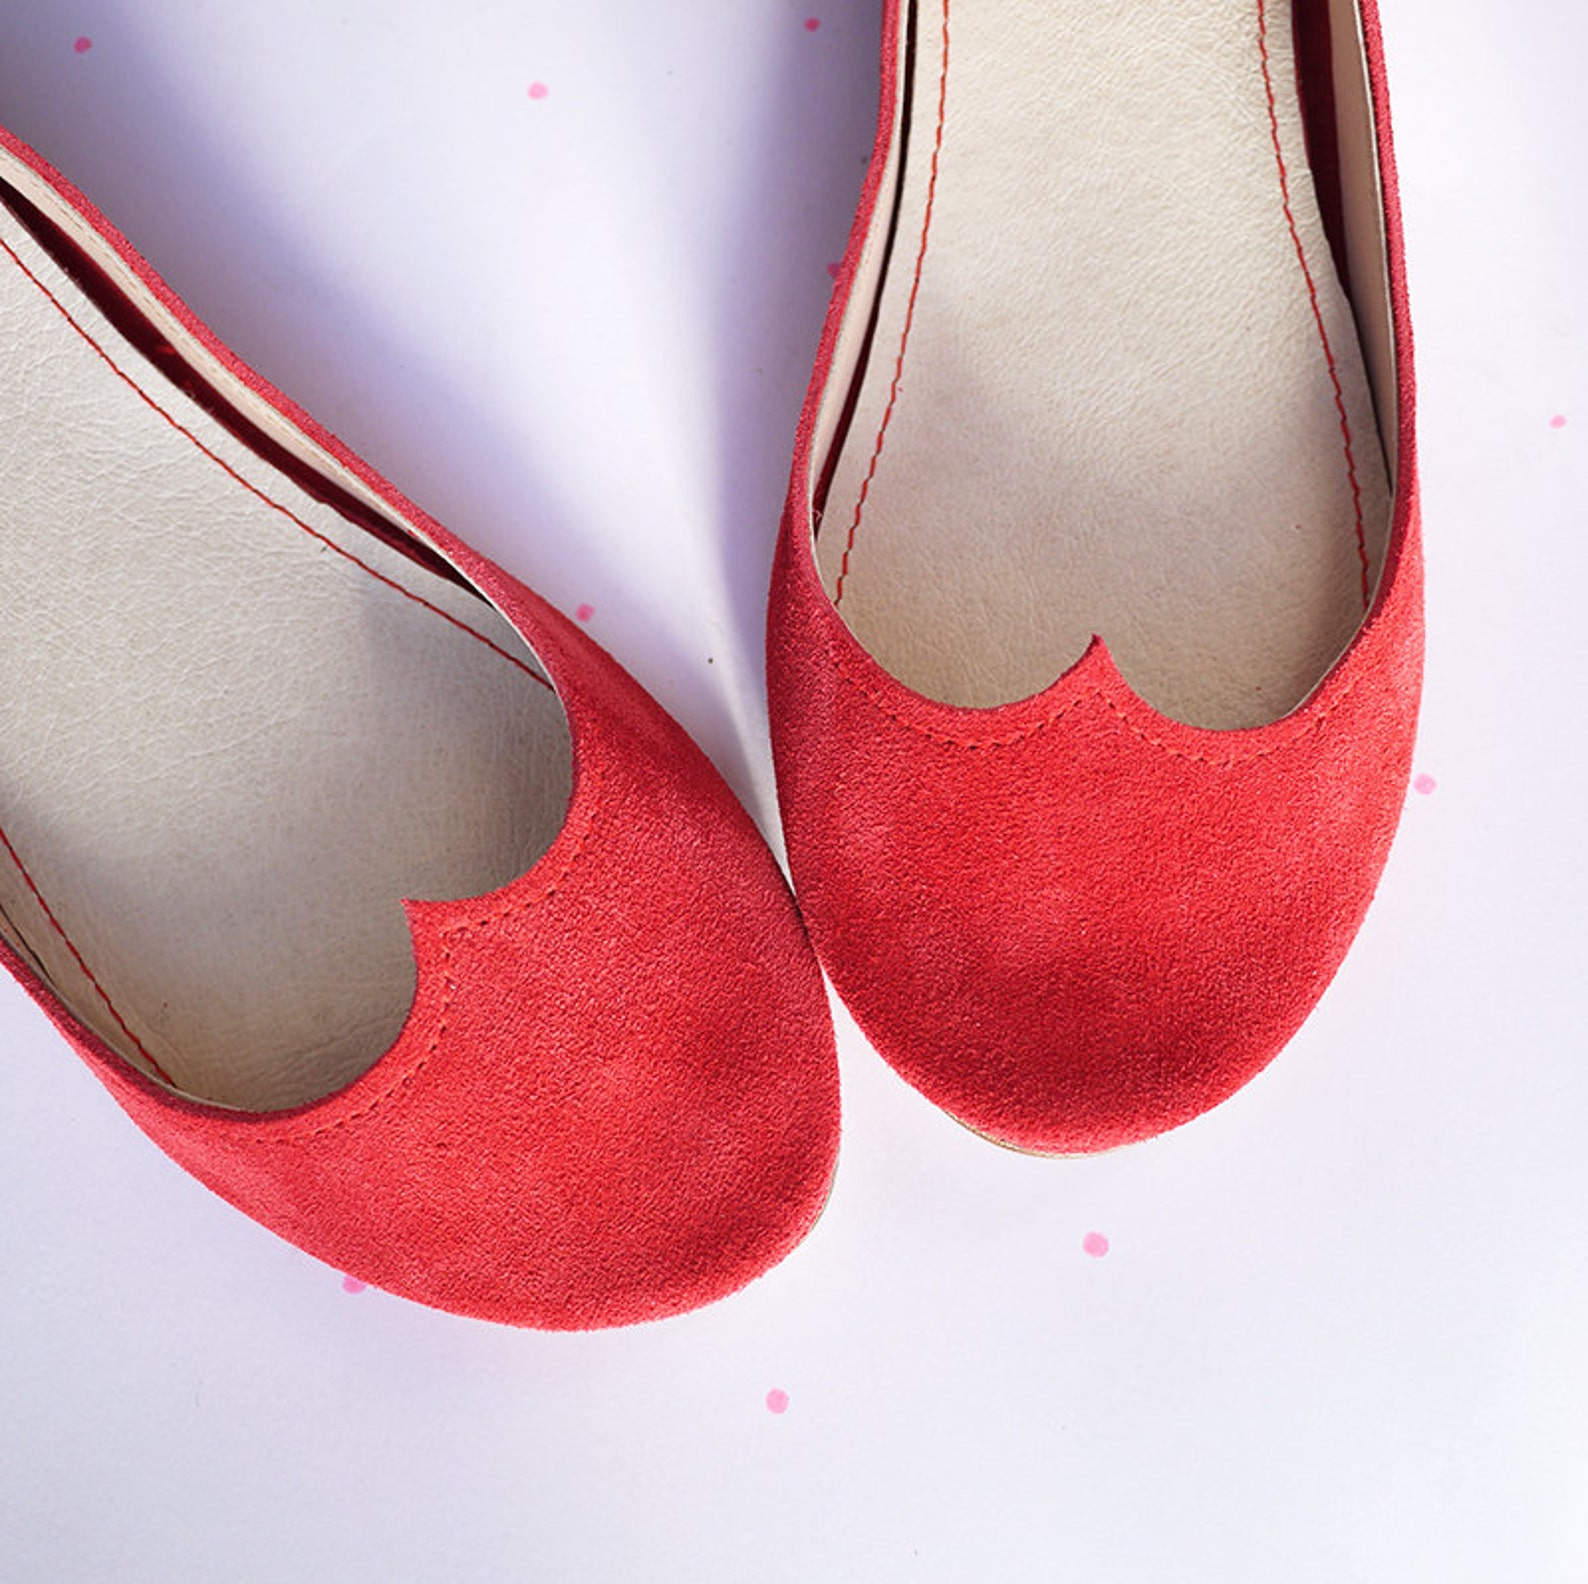 red ballet shoes. ballet flats. leather flats. red shoes. wedding shoes. bridal shoes. gift for her. personalized gift. handmade